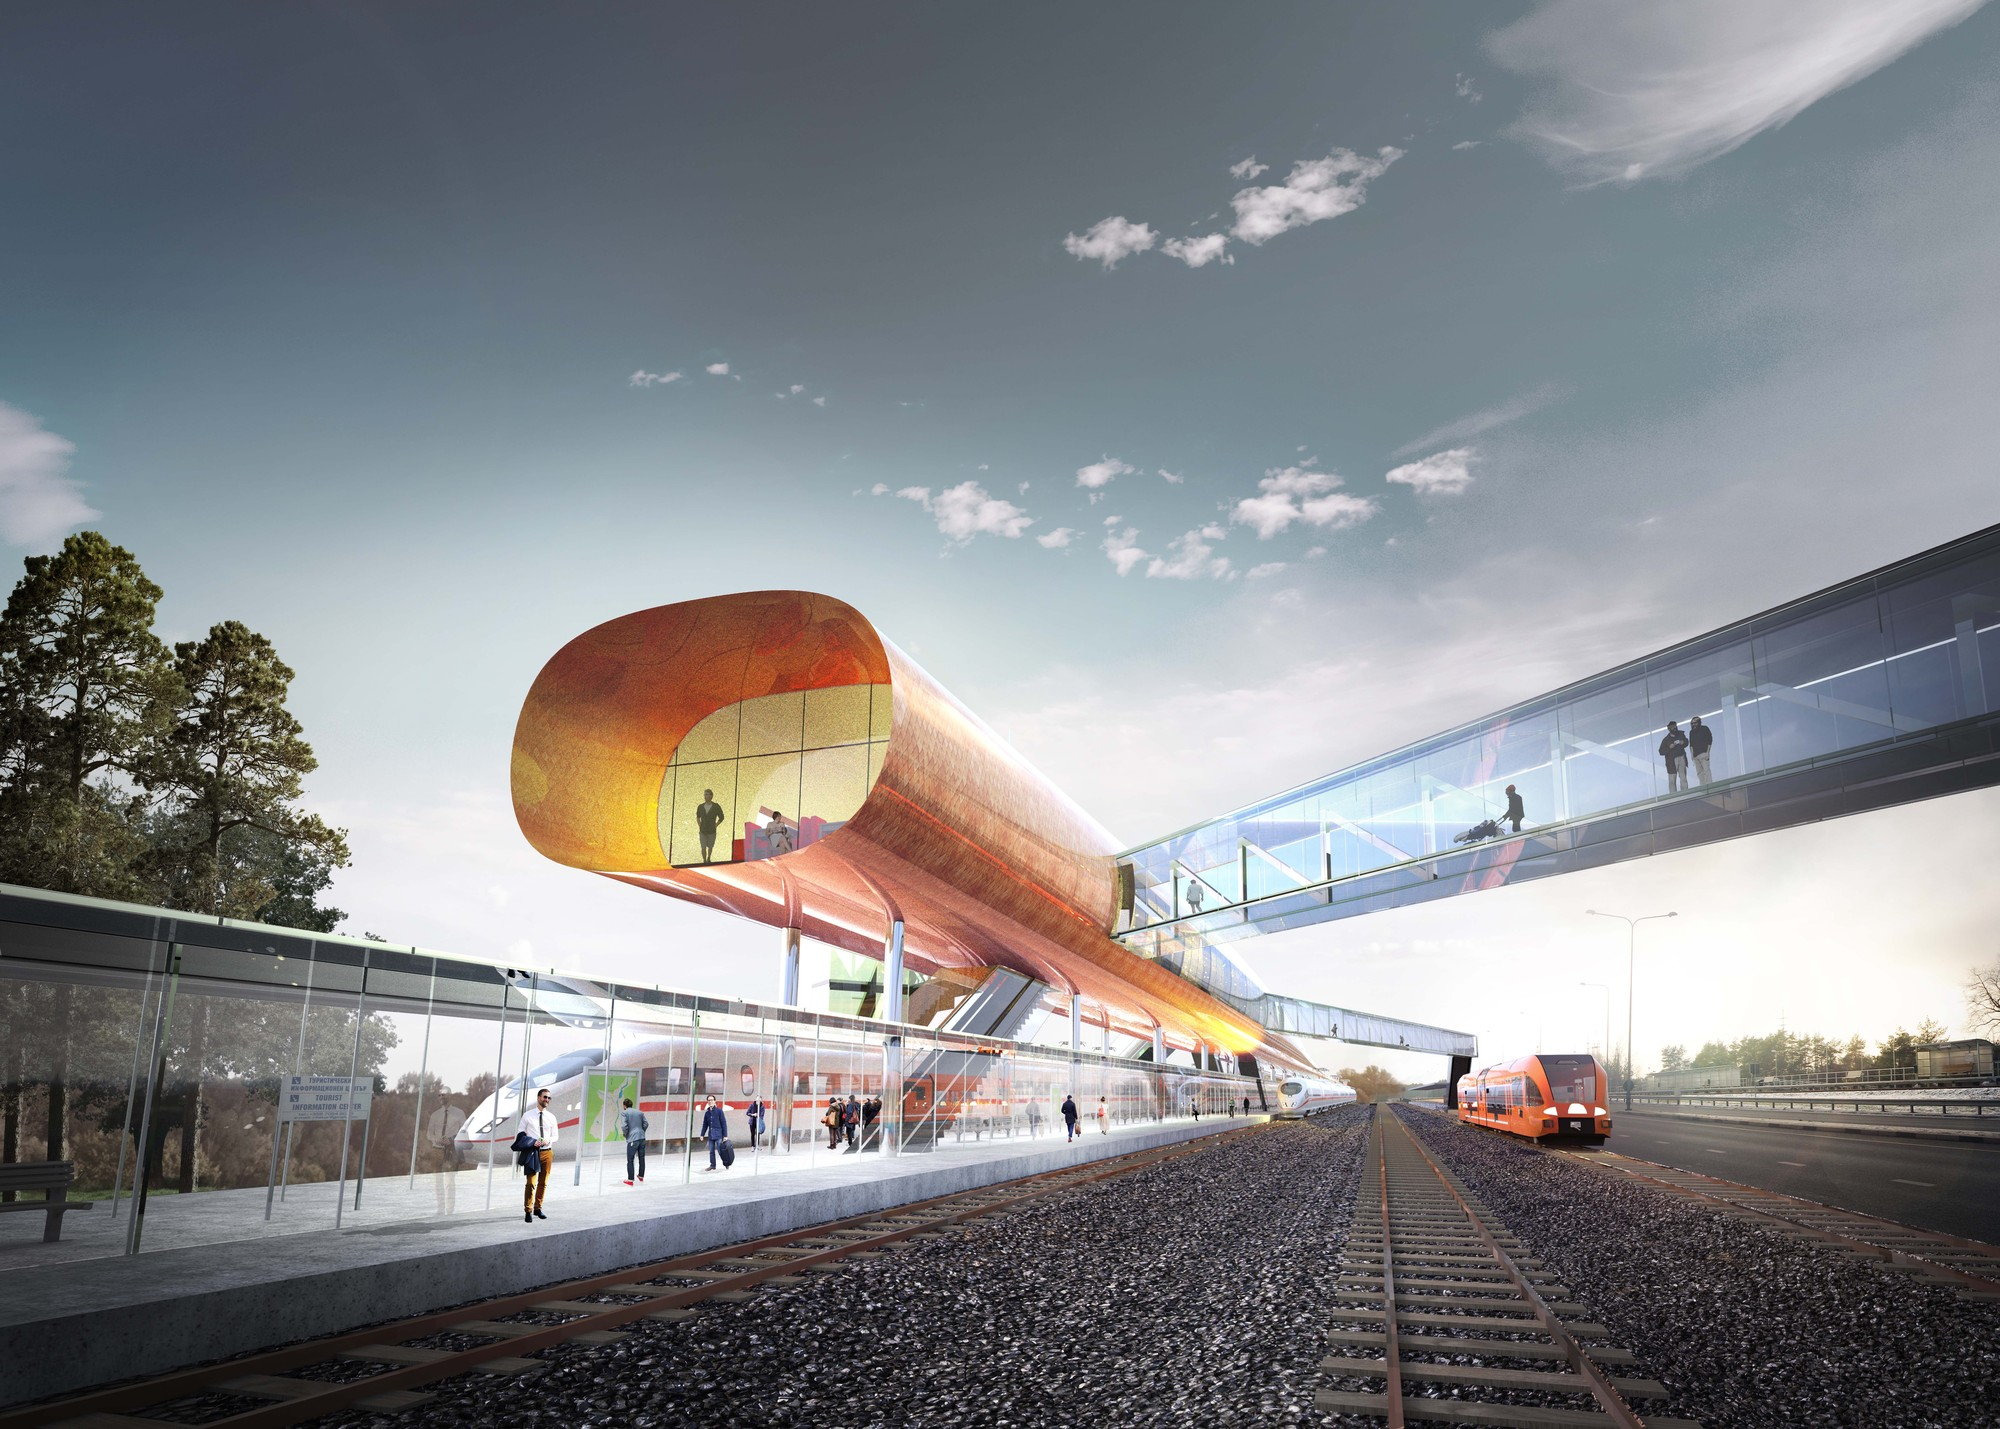 Arhitektuuribüroo PLUSS Wins Competition for Railway Station in Pärnu, Courtesy of Arhitektuuribüroo PLUSS